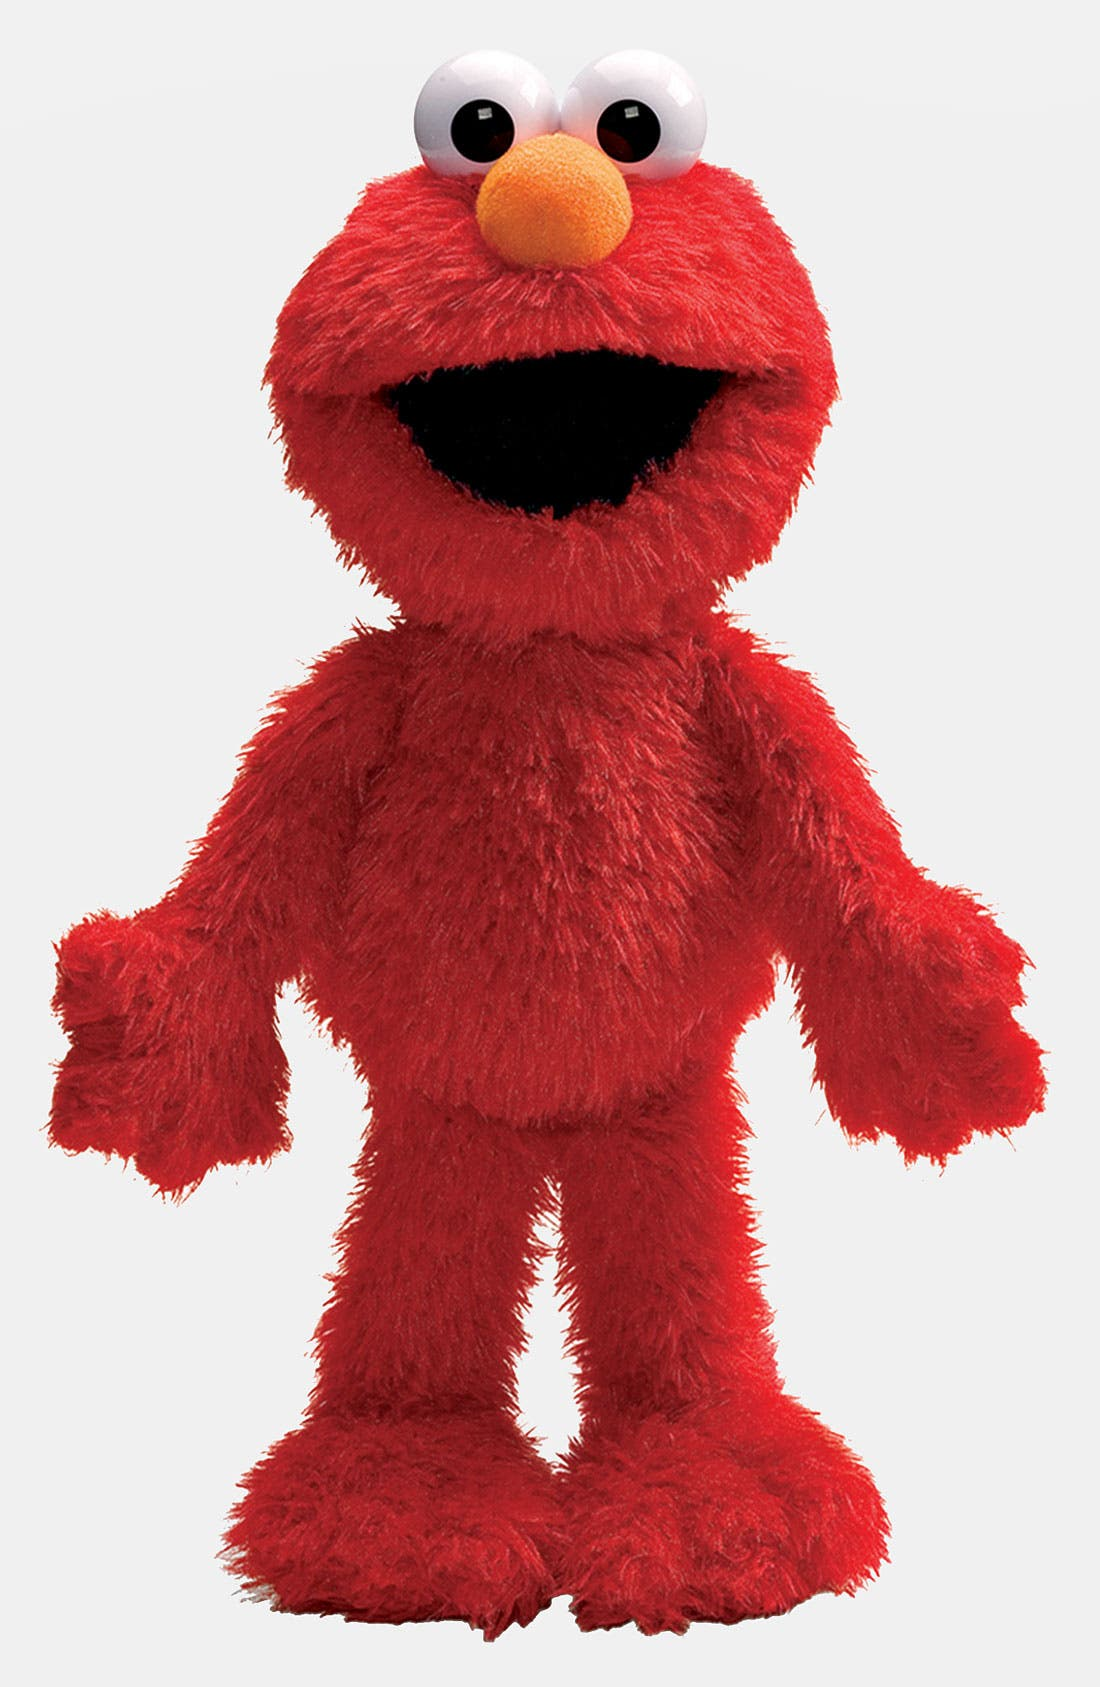 Alternate Image 1 Selected - Gund Sesame Street® Stuffed Animal